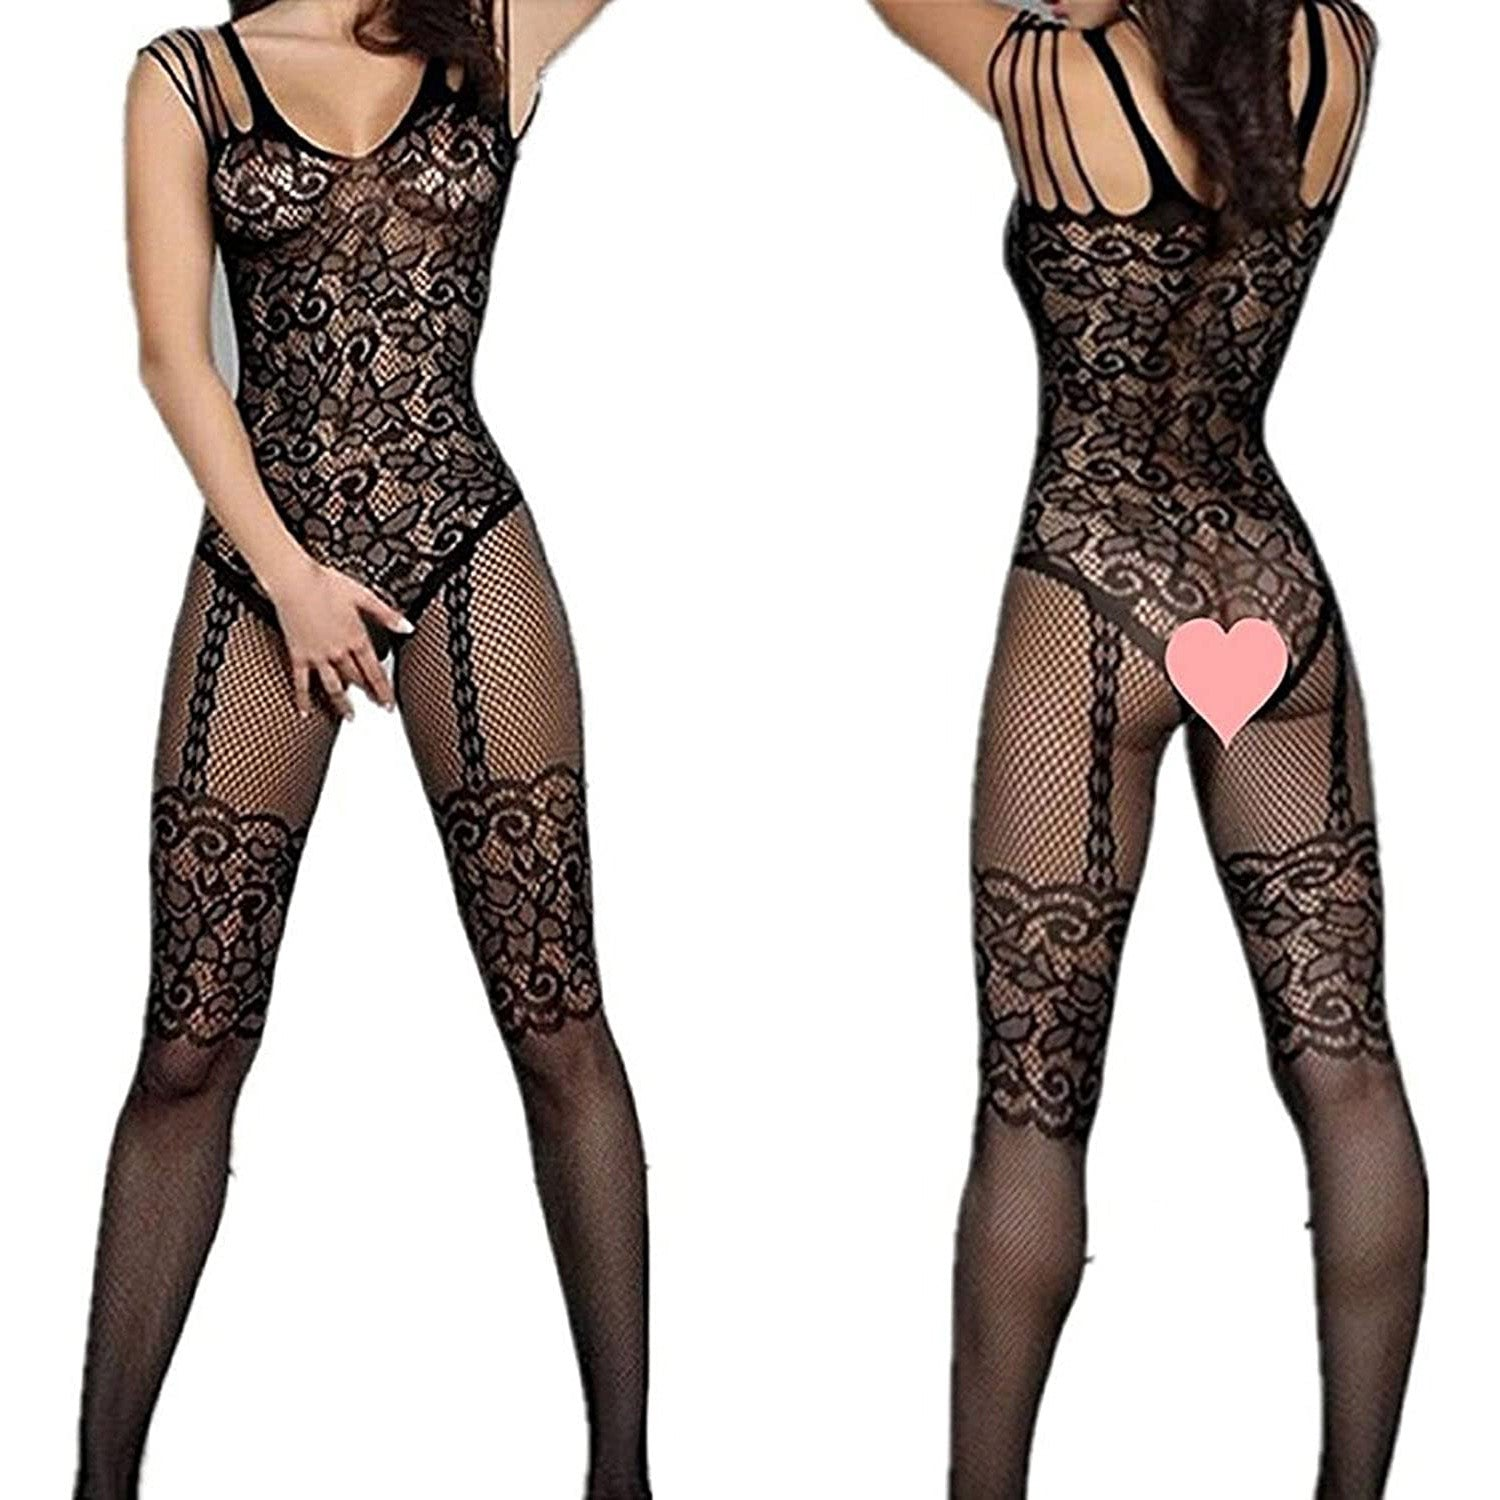 Ladies Sexy Fishnet Bodysuit Socks Women Jacquard Body Stockings Mesh Hollow High Elasticity Lingerie Costumes Net Stocking-AN828